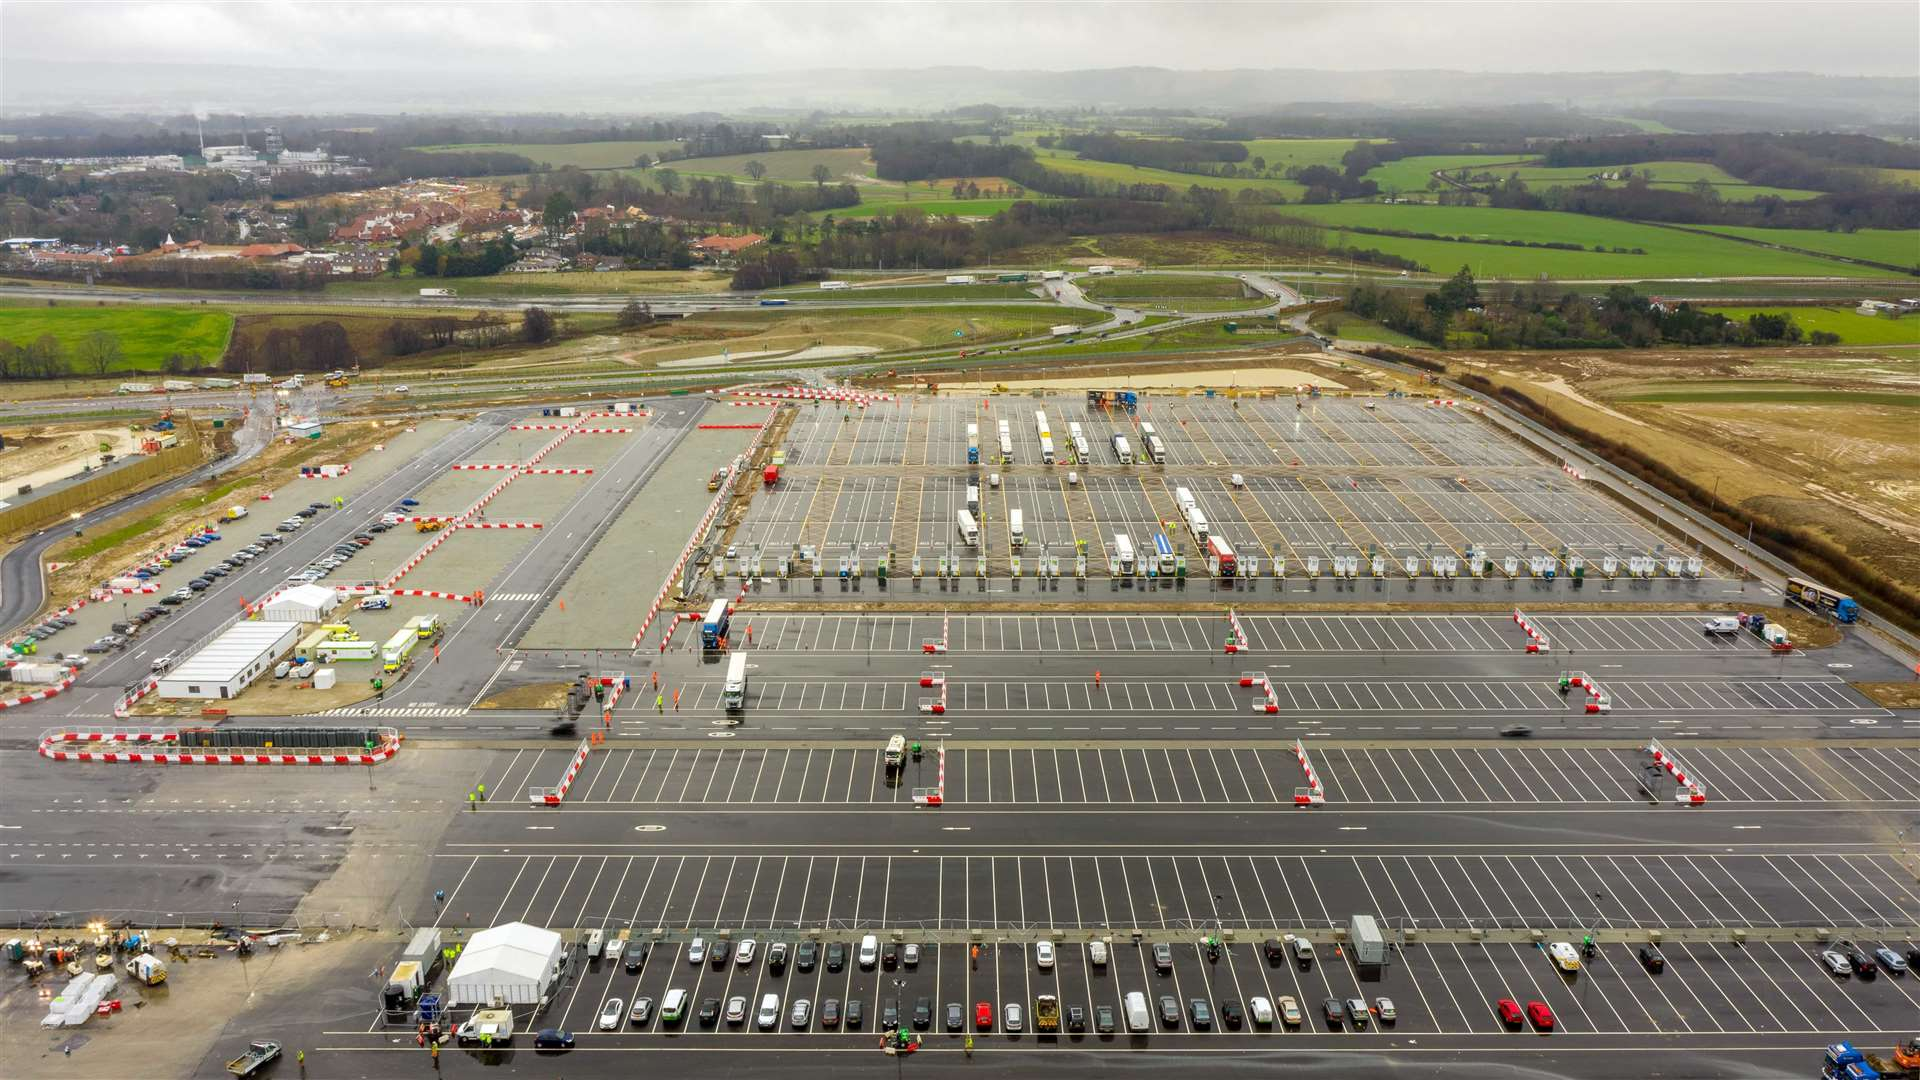 The lorry park is pictured here days after opening in January. Picture: Esprit Drone Services